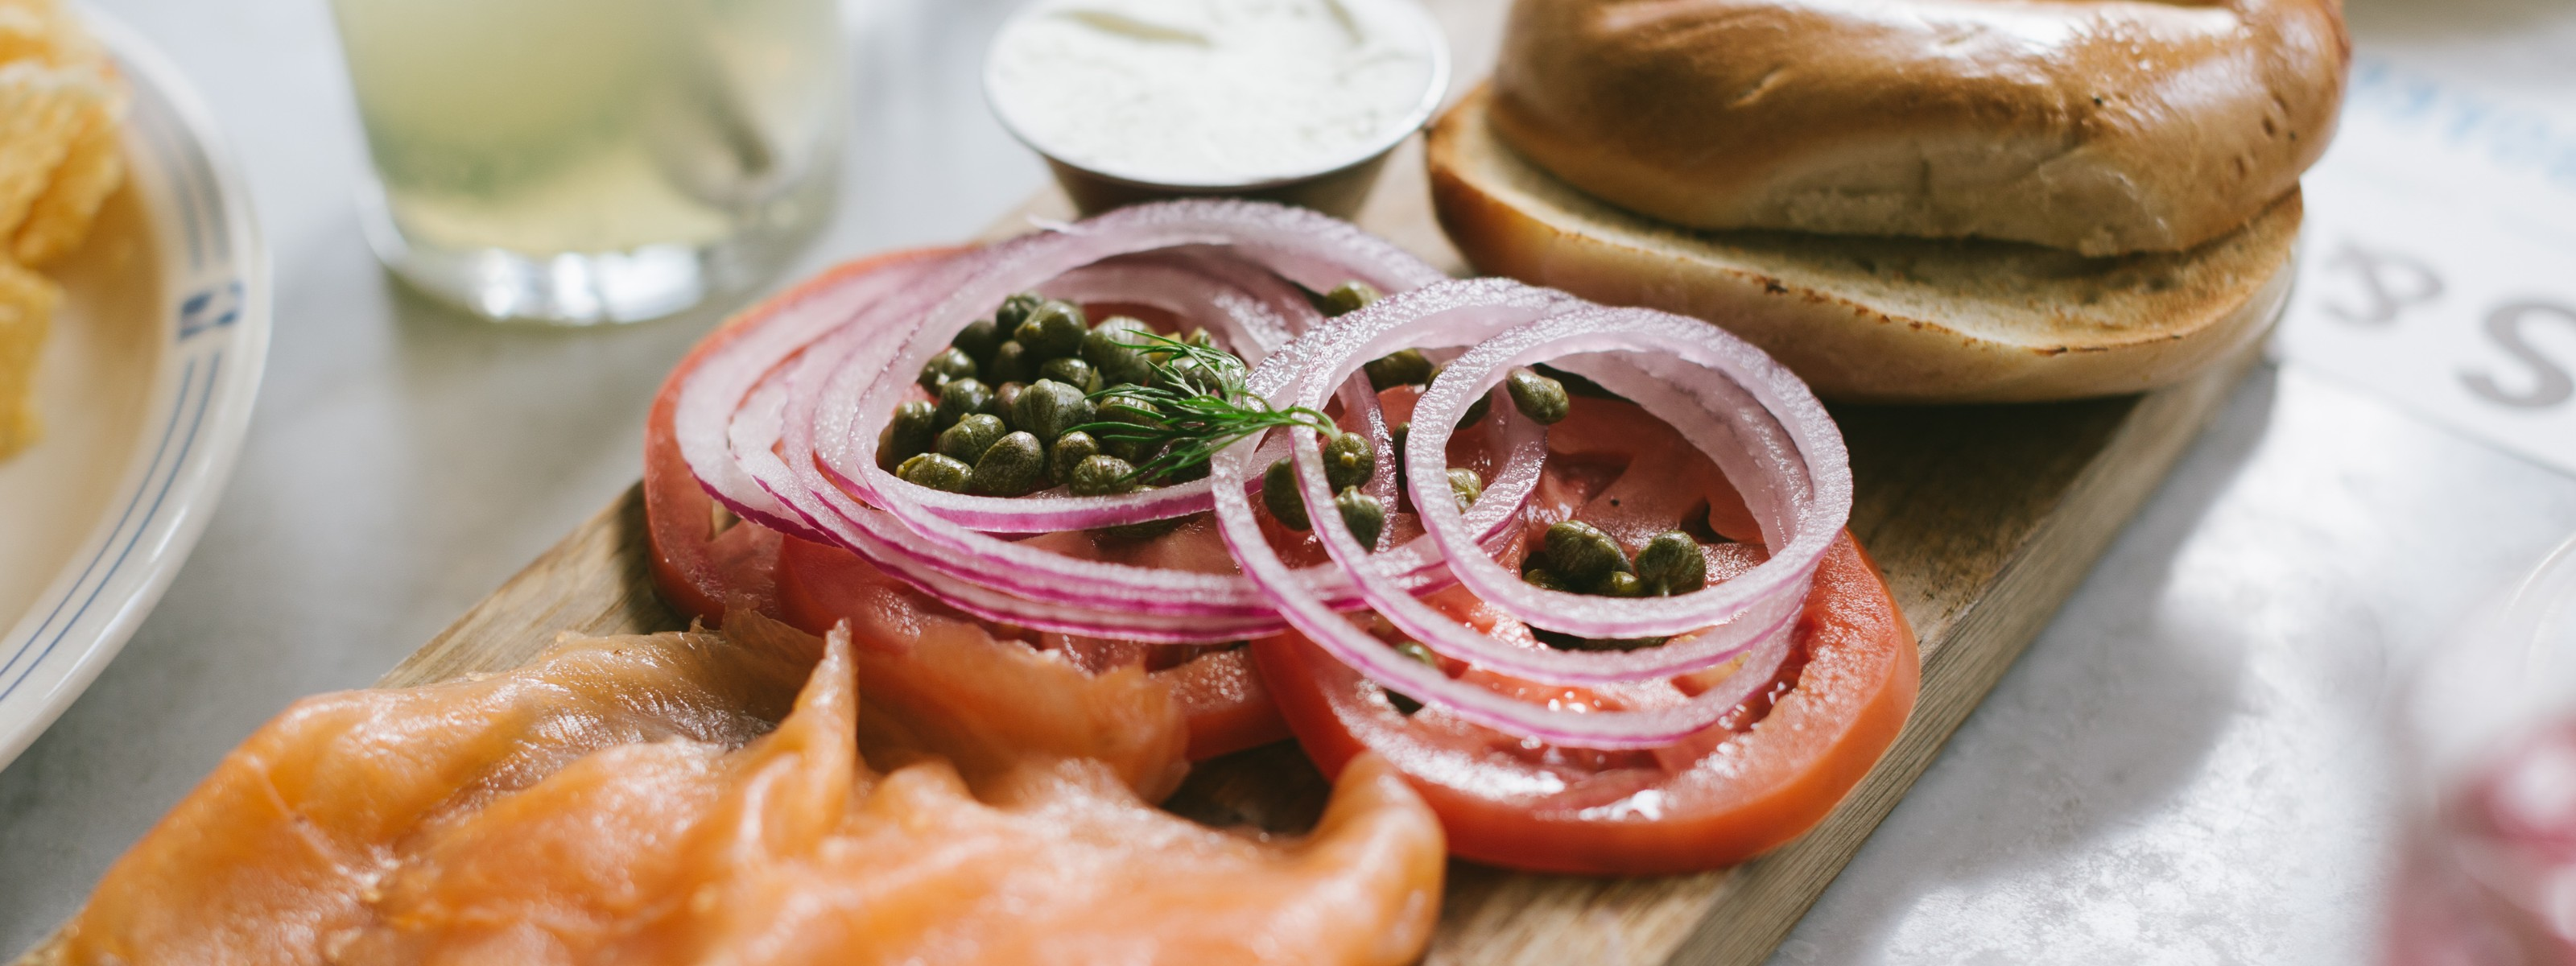 28 NYC Restaurants Selling Groceries And Meal Kits - New York - The Infatuation